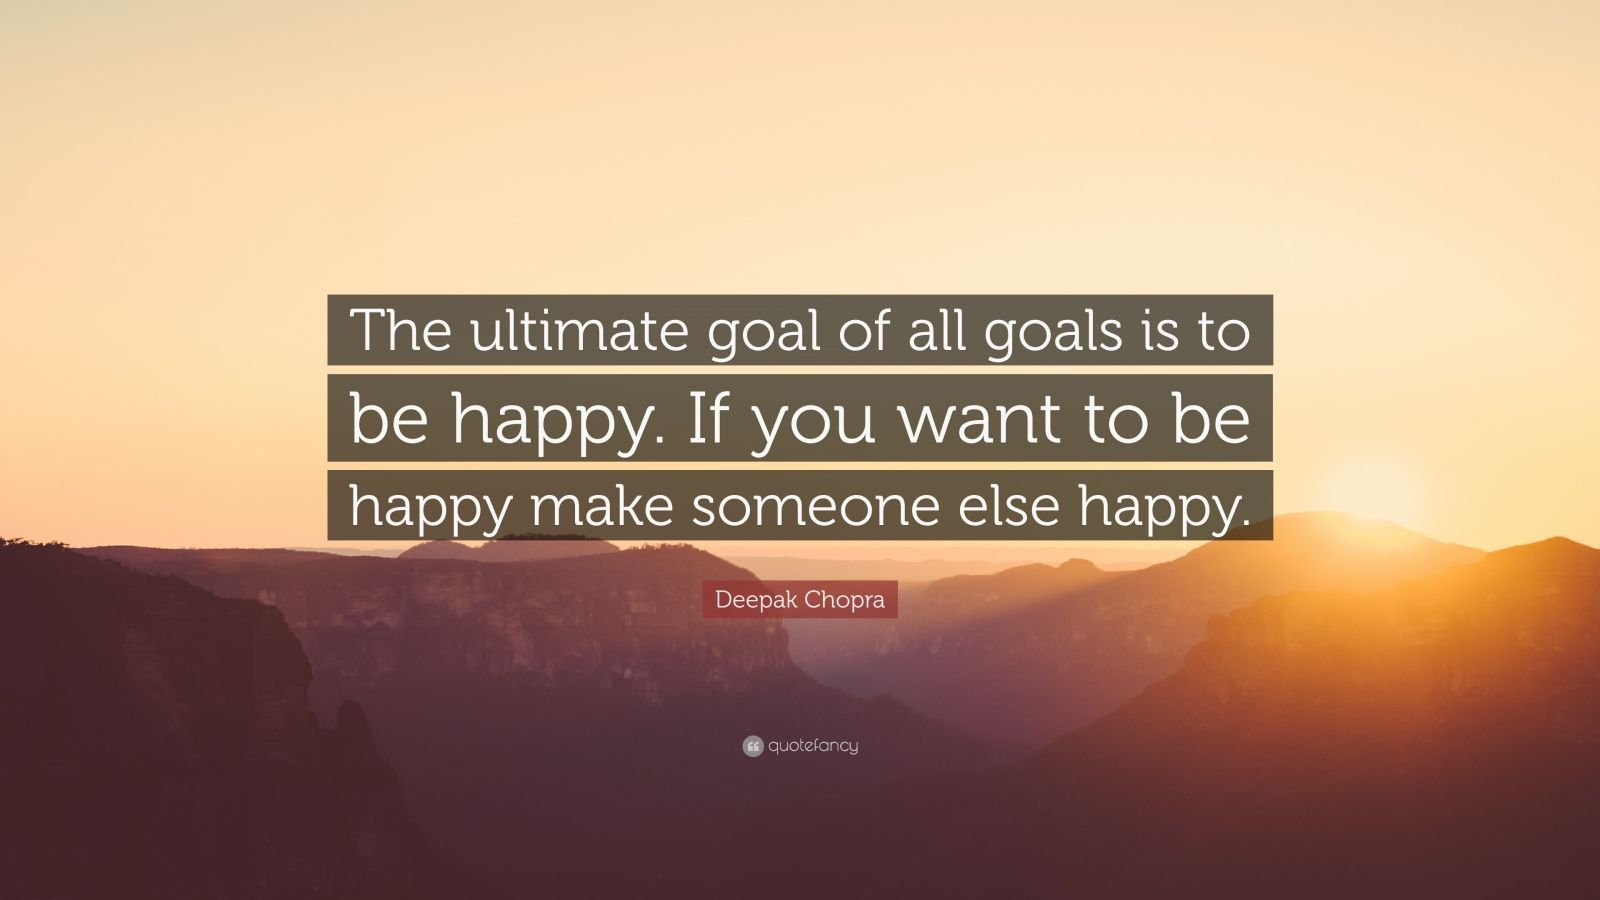 Deepak chopra quote the ultimate goal of all goals is to be happy deepak chopra quote the ultimate goal of all goals is to be happy altavistaventures Images